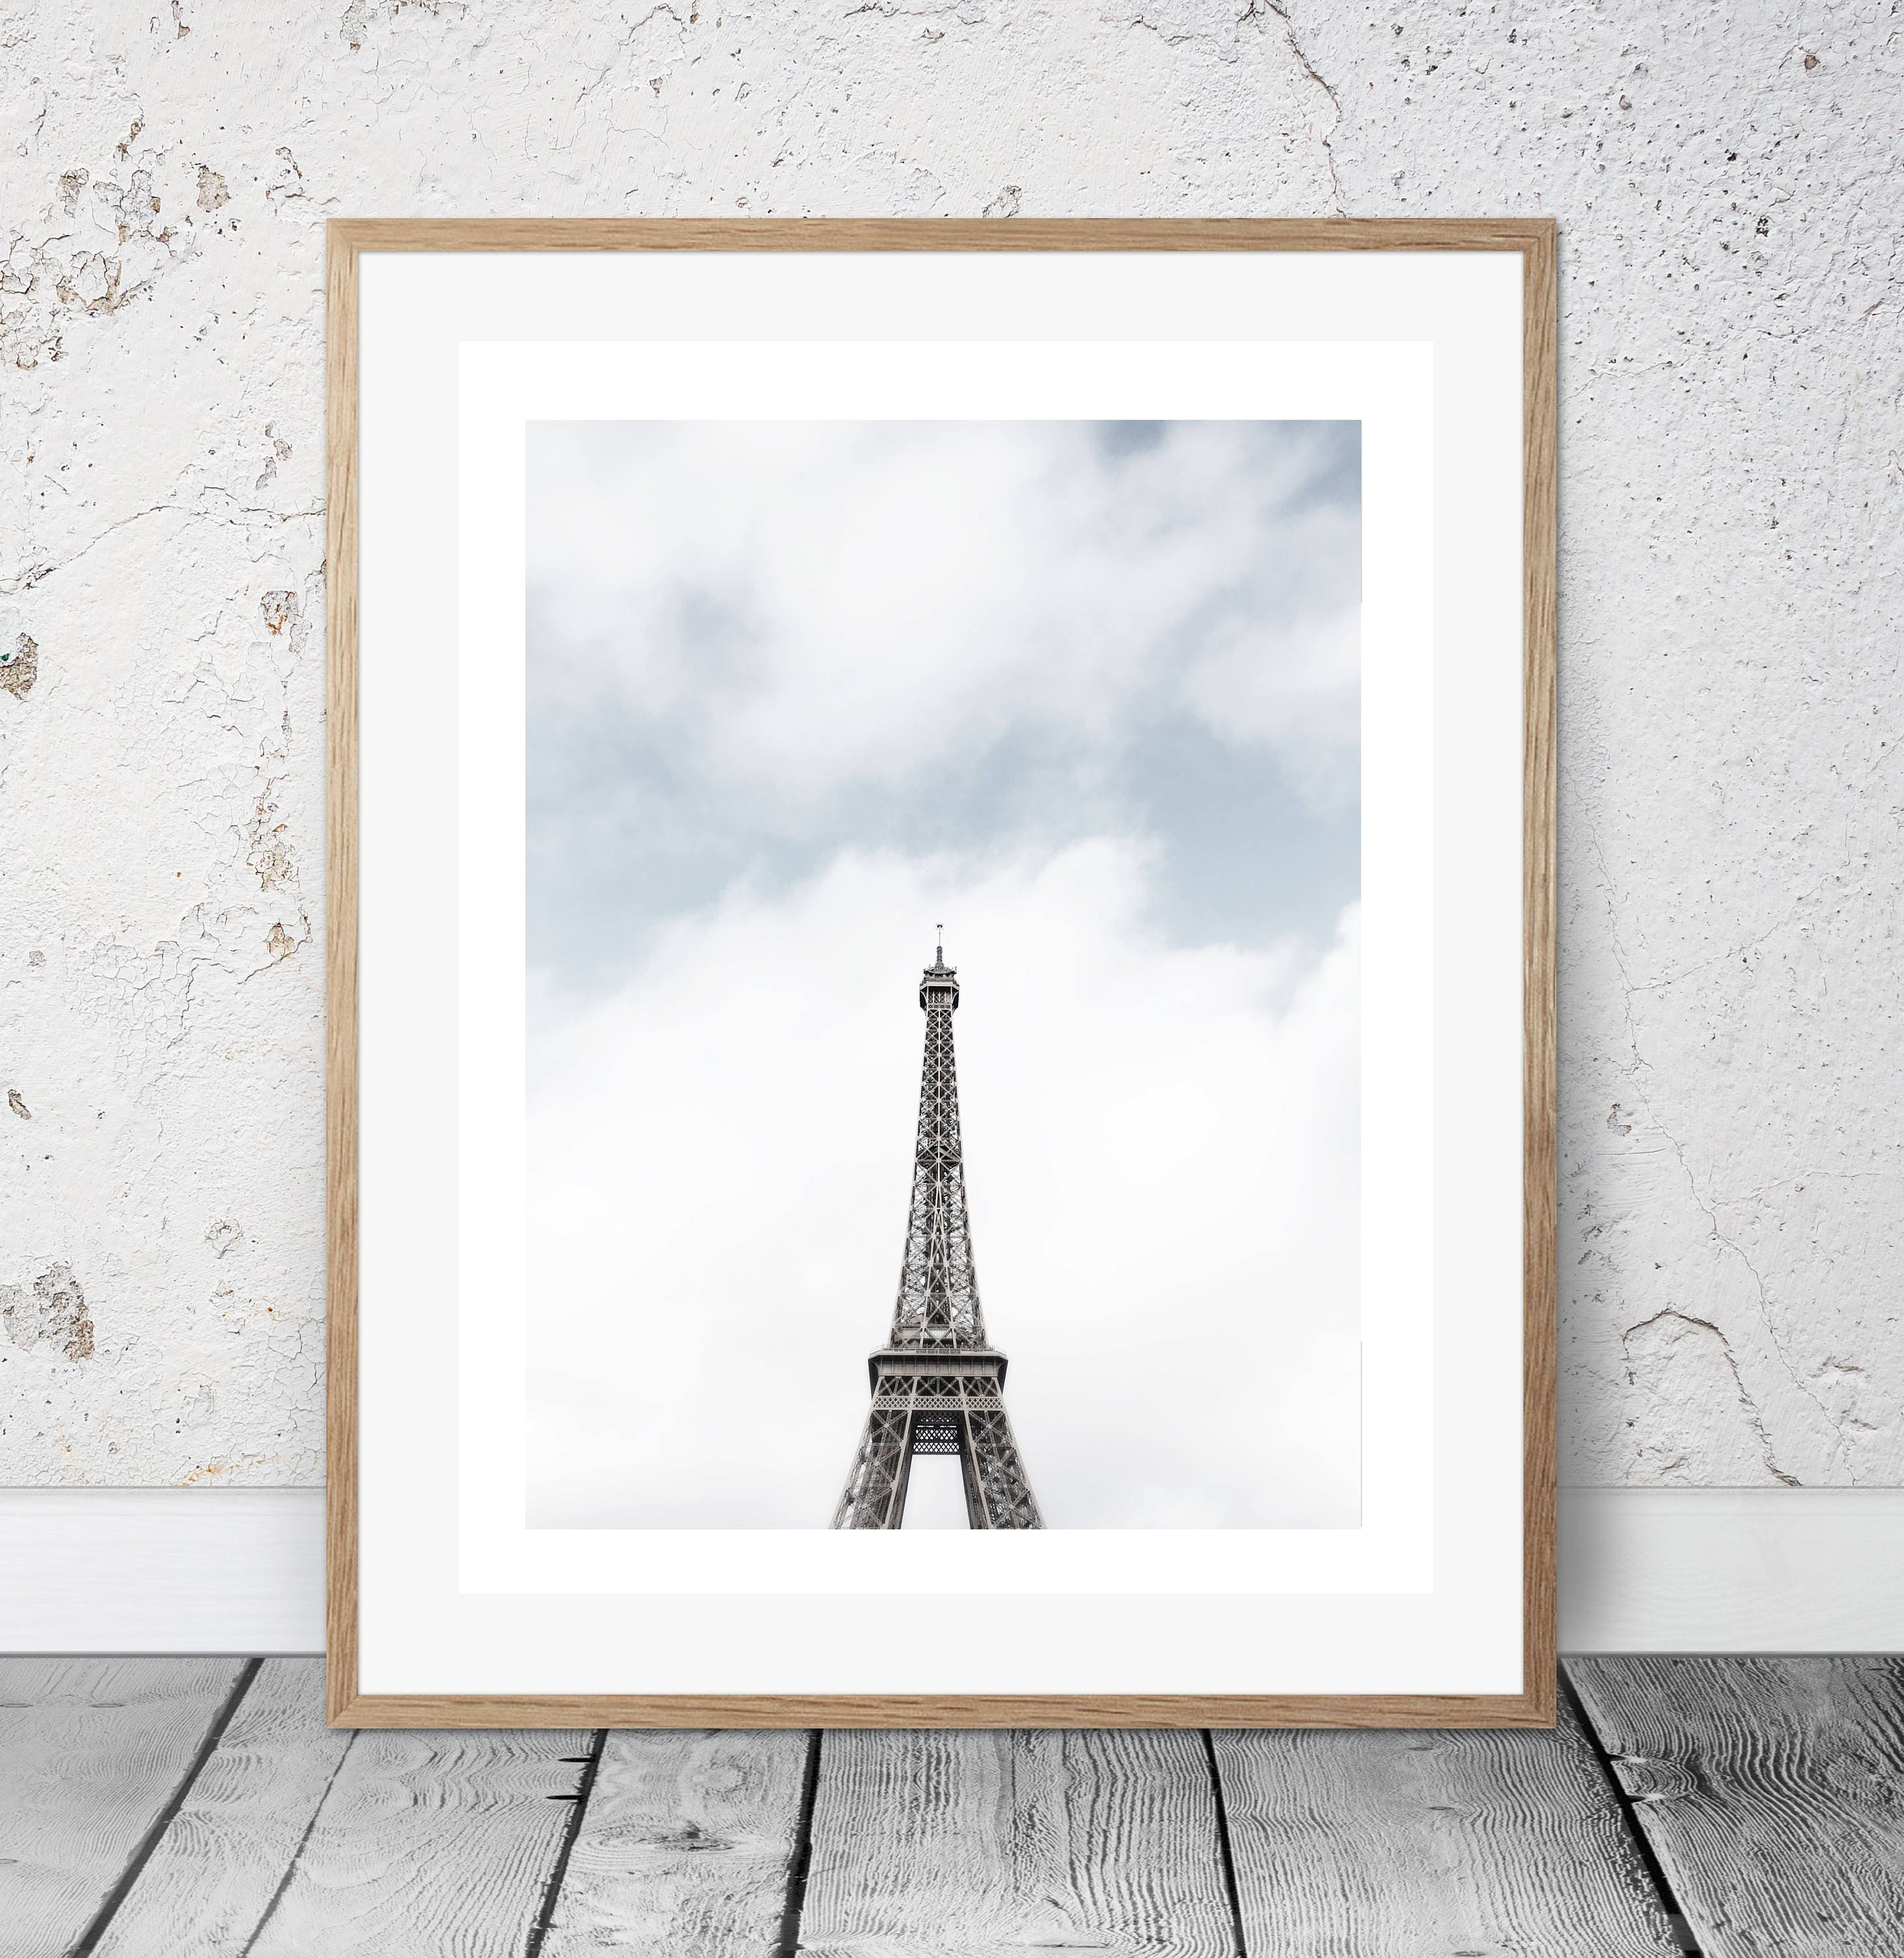 Eiffel Tower Room With A View, Paris Bedroom Decor, Gift For French Lovers,  Modern Minimalist, Digital Print, Architecture, Romantic Print